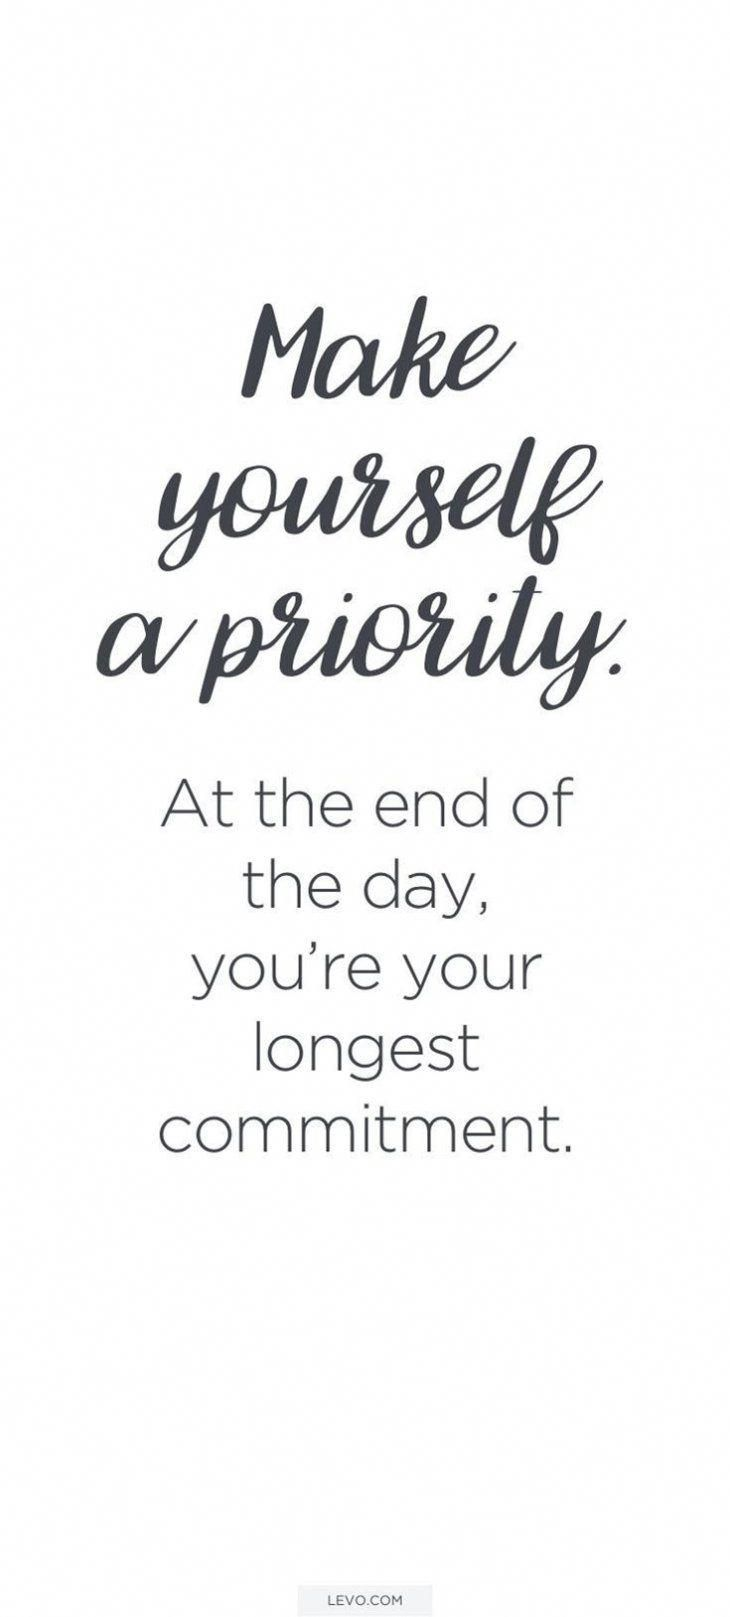 Make Yourself A Priority Michelejamison Bodypositive Weightlossmotivation Morning Inspirational Quotes Boss Birthday Quotes Birthday Quotes Inspirational